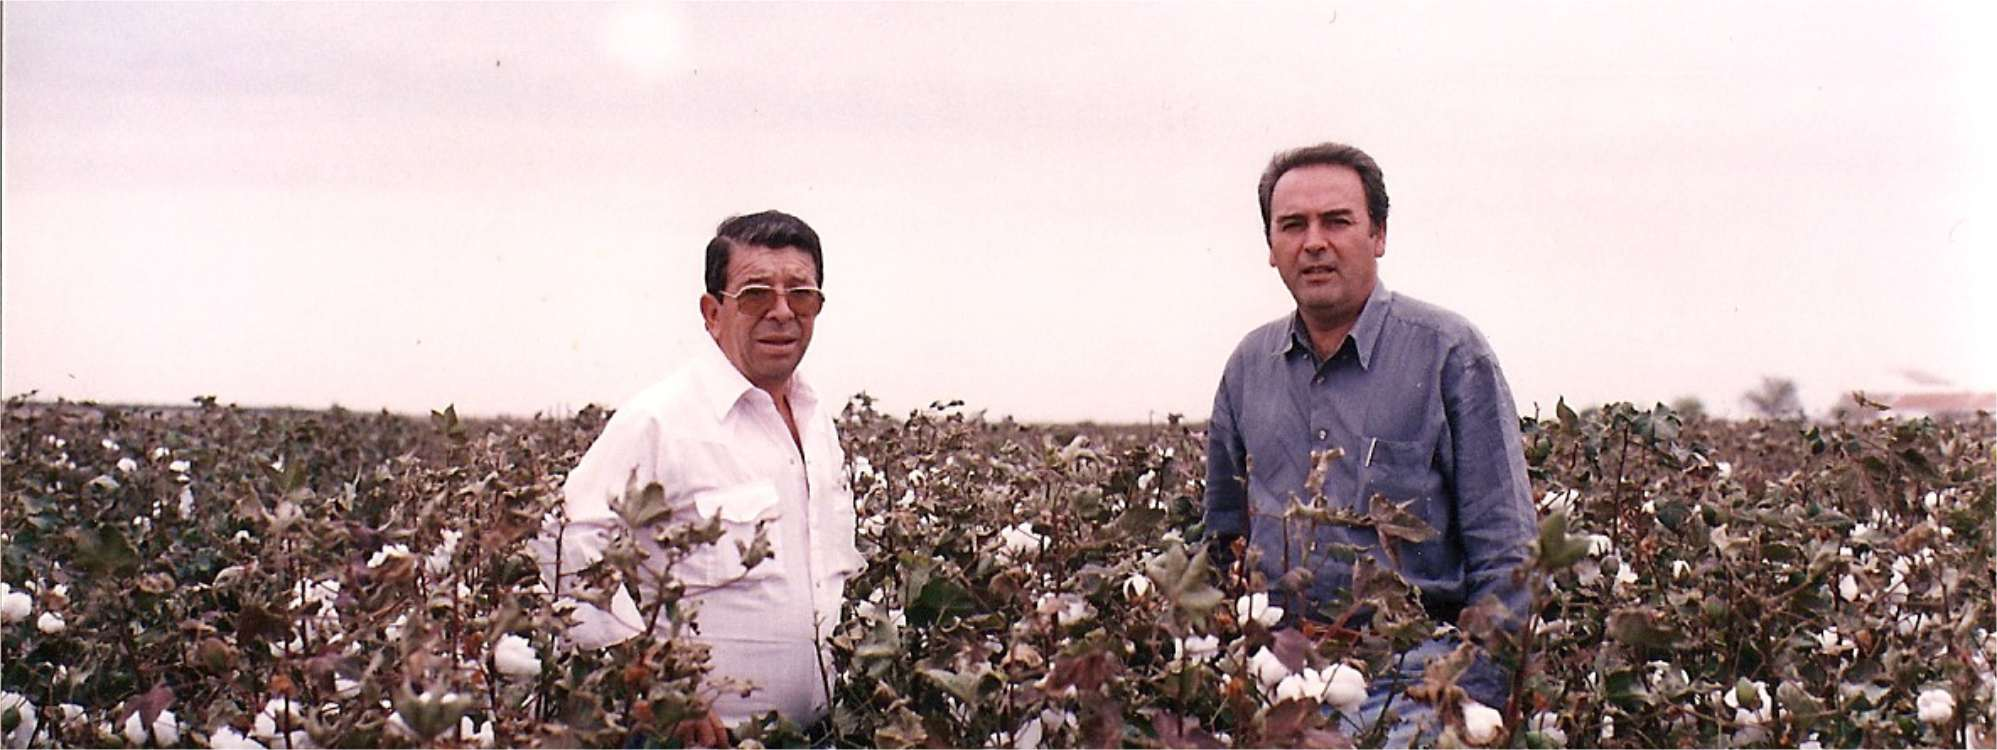 In 1986, Antonio Fernández Montero and his brother Gregorio acquire the two farms, after which they decide to modernise machinery and start growing new crops such as organic olives from the Arbenquina variety. Believe it or not, but in 2016 our olive trees will be 30 years old!